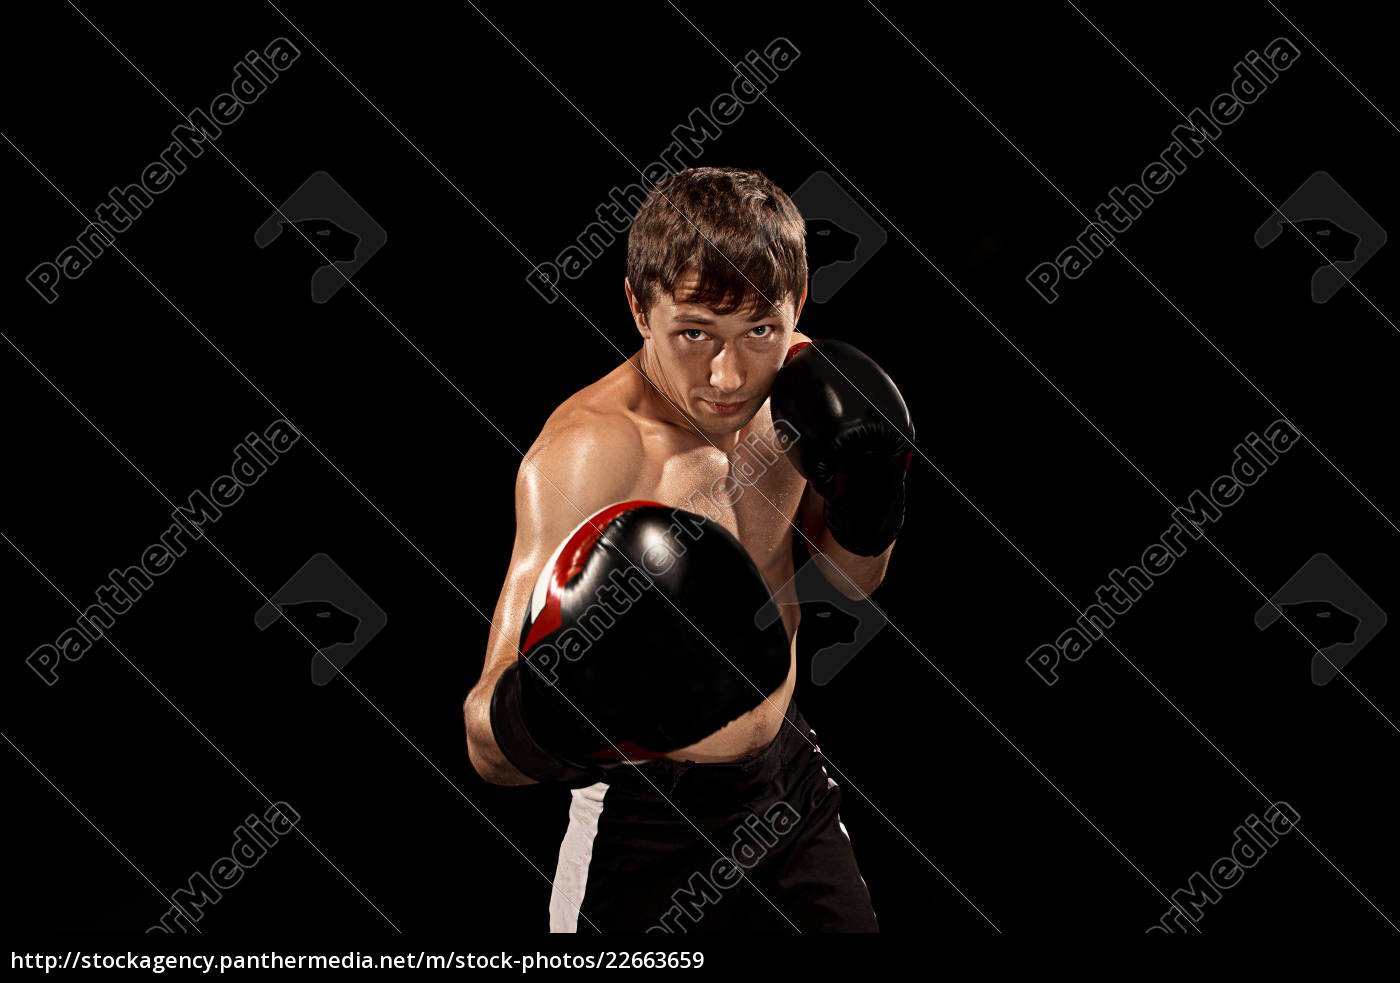 male, boxer, boxing, in, punching, bag - 22663659